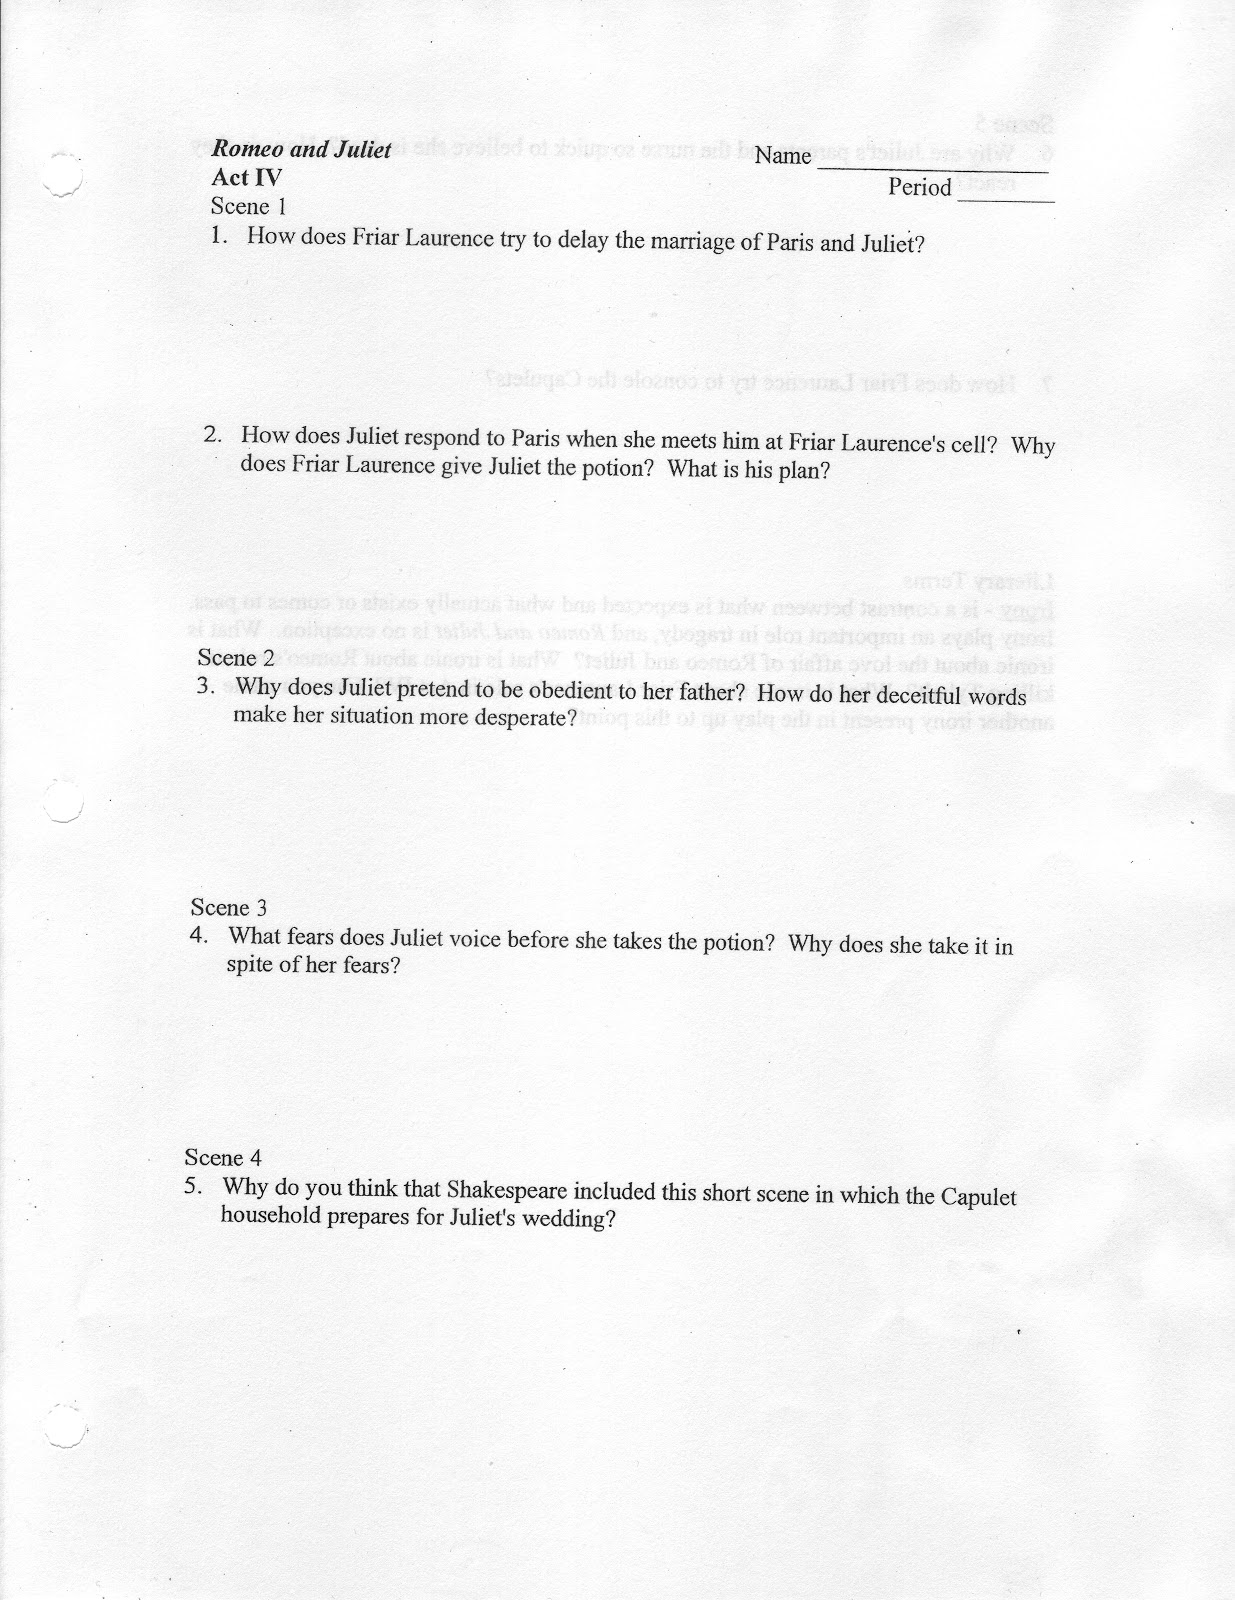 romeo and juliet act ii essay questions 91 121 113 106 romeo and juliet act ii essay questions